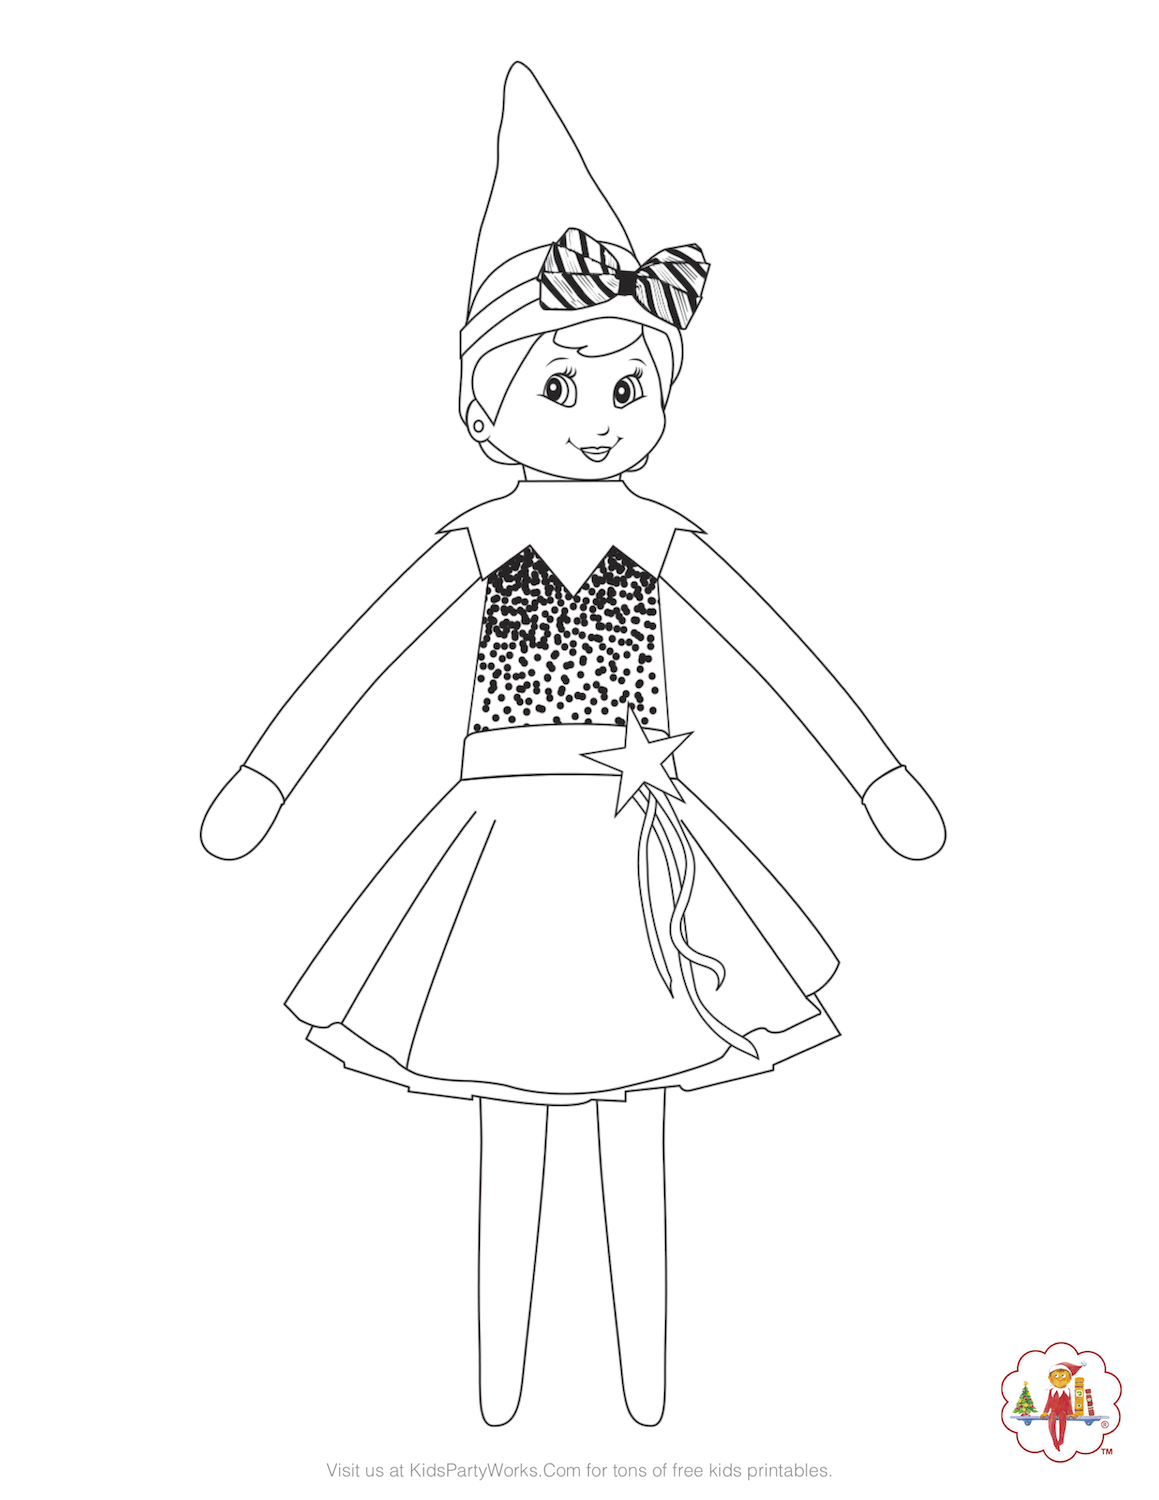 elf on the shelf printable coloring pages little lids siobhan coloring shelf the elf printable on pages